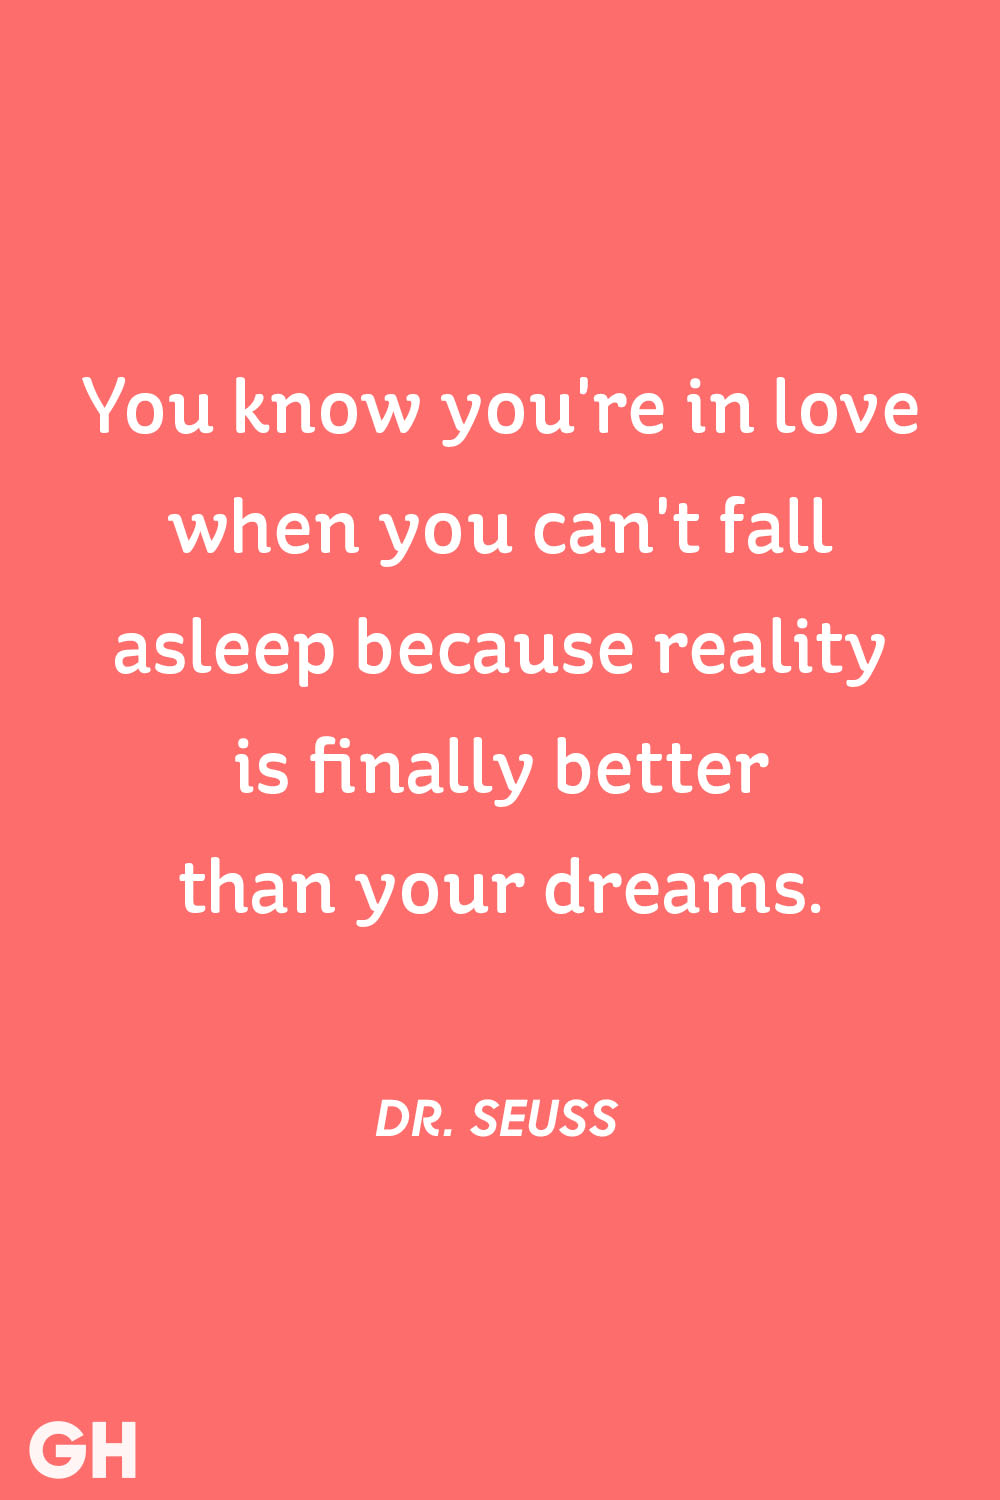 Dr Seuss Quotes About Love 30 Cute Valentine's Day Quotes  Best Romantic Quotes About